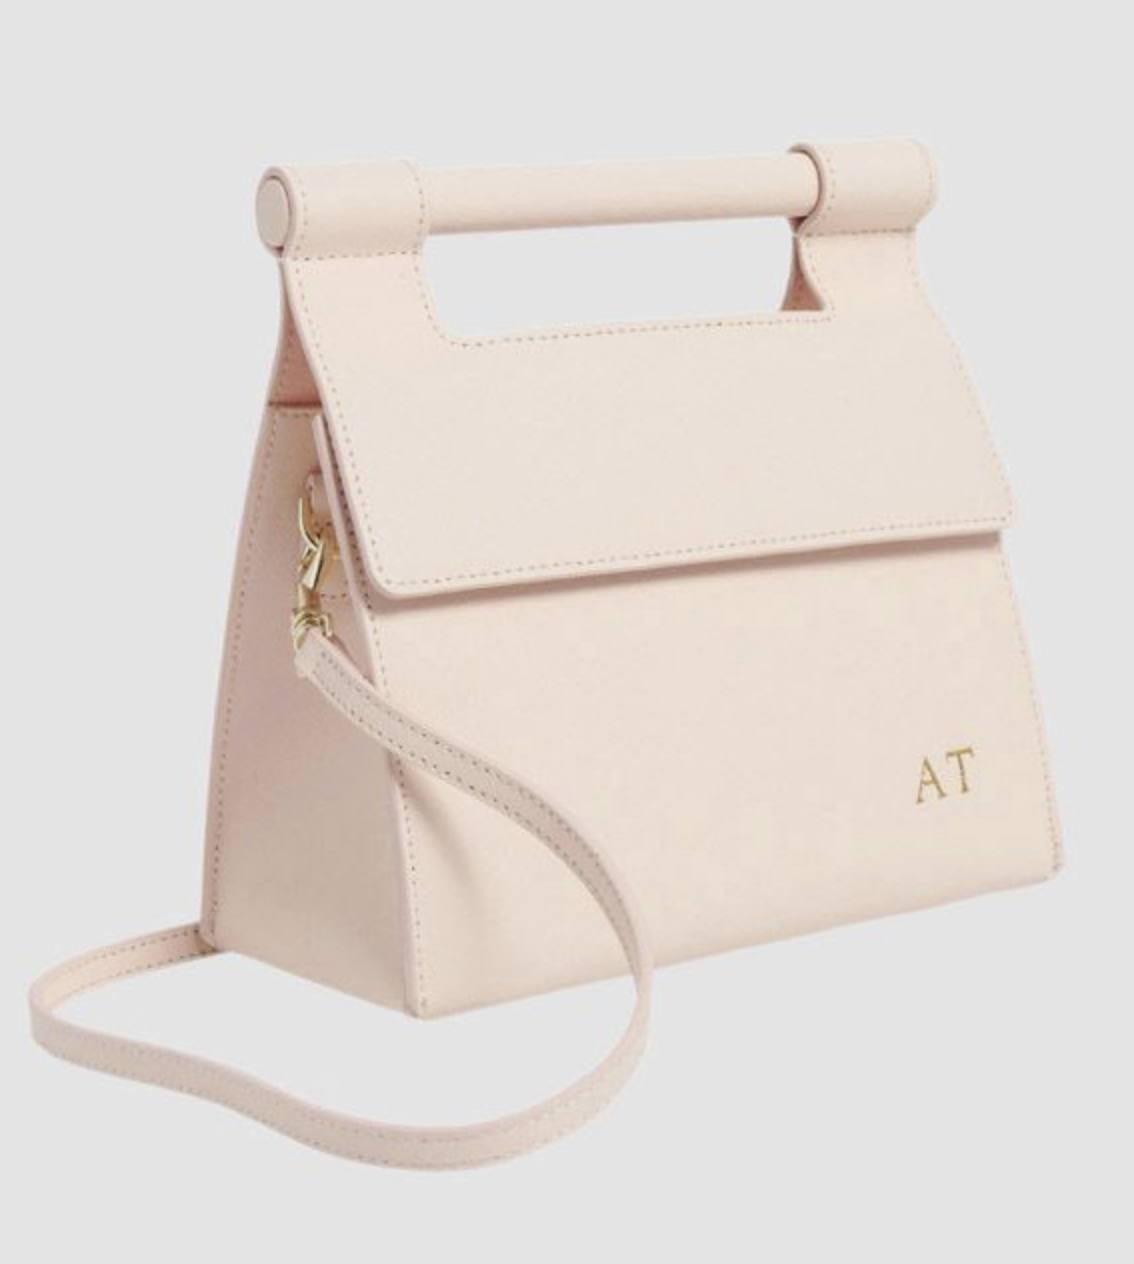 The Daily Edited Pale Pink Handle Shoulder Bag